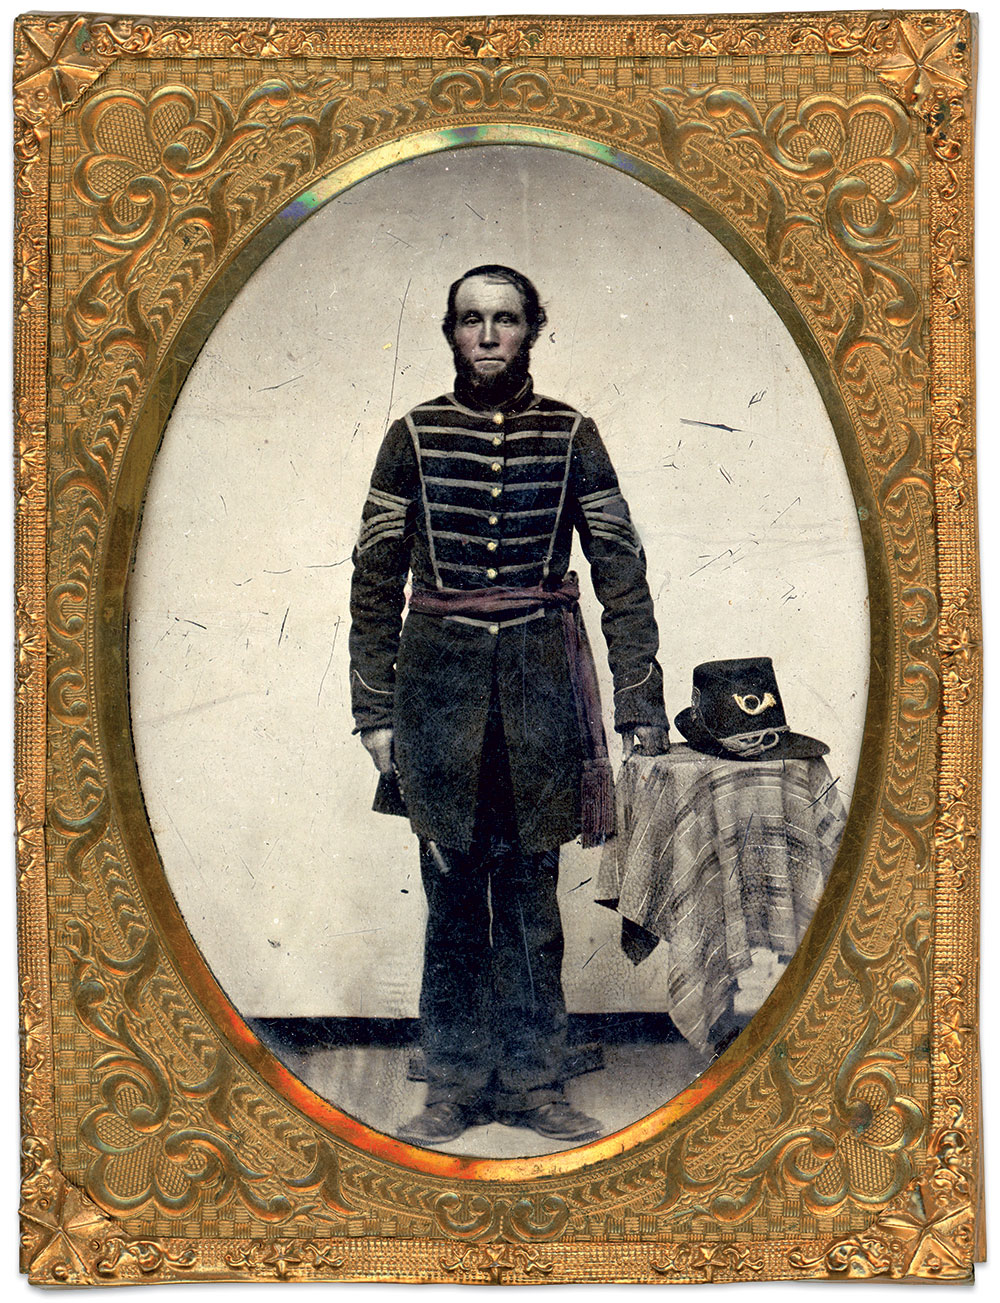 Quarter-plate tintype by an anonymous photographer. Jeff Dygert Collection.